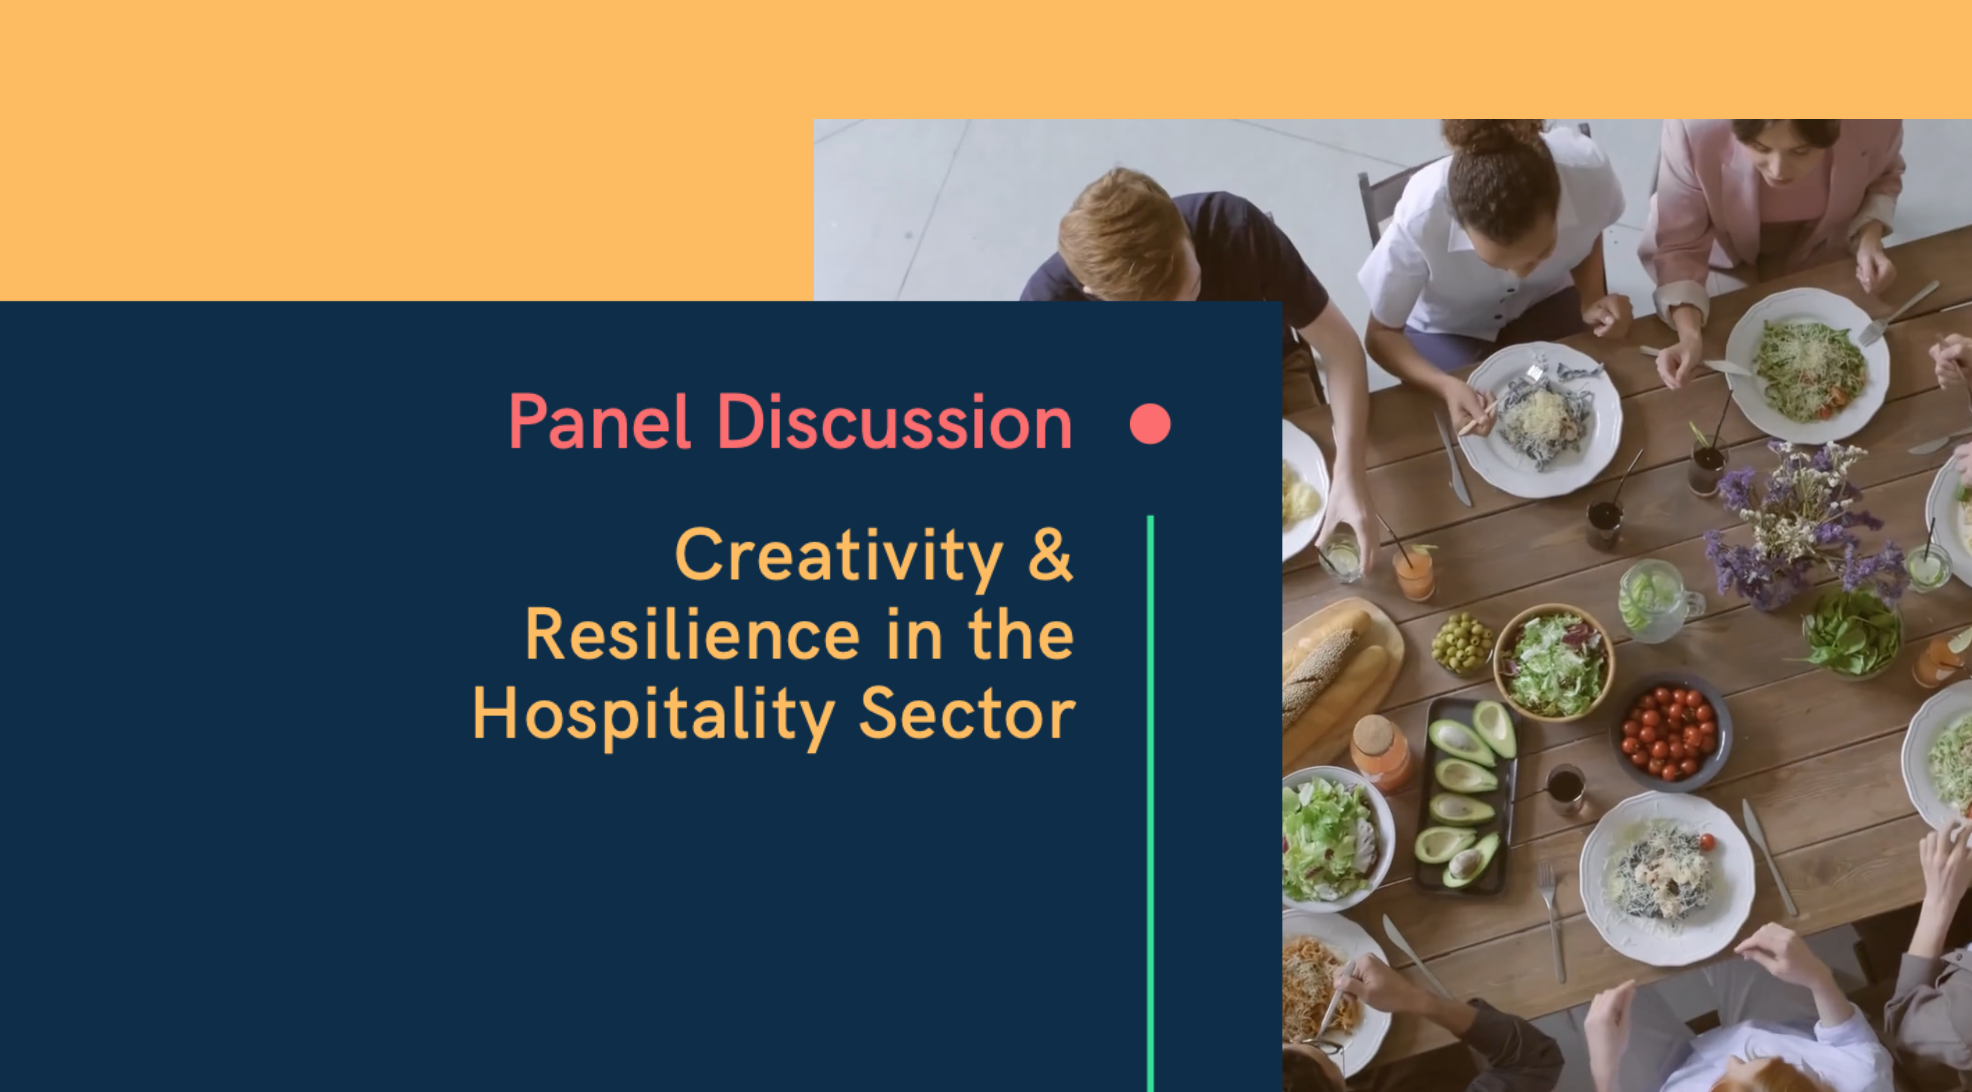 Creativity & resilience in the hospitality sector